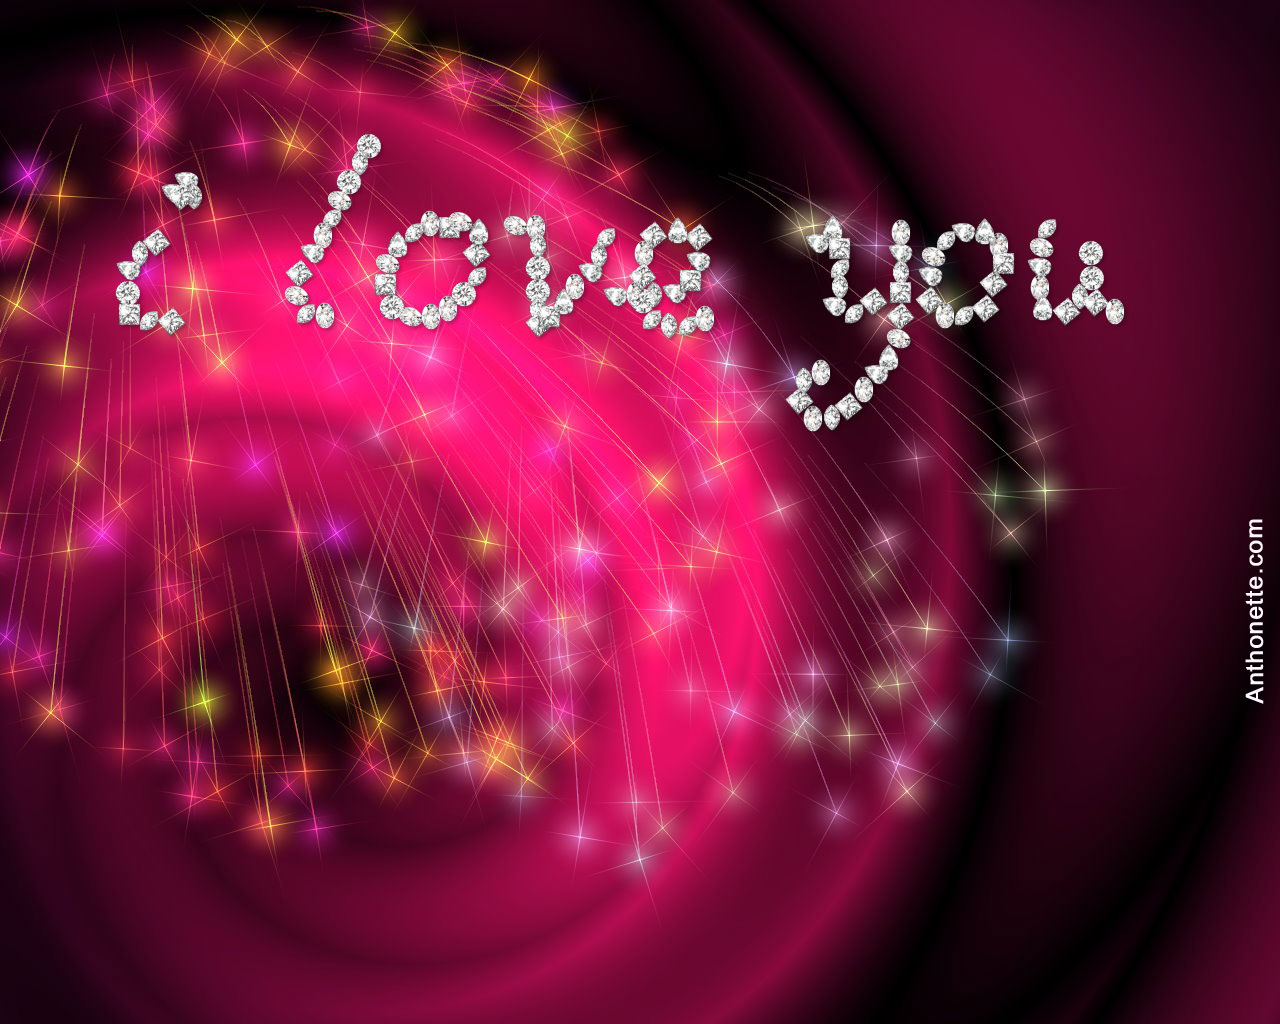 I love you Text Pictures for Facebook HD Images Free Download 1280x1024